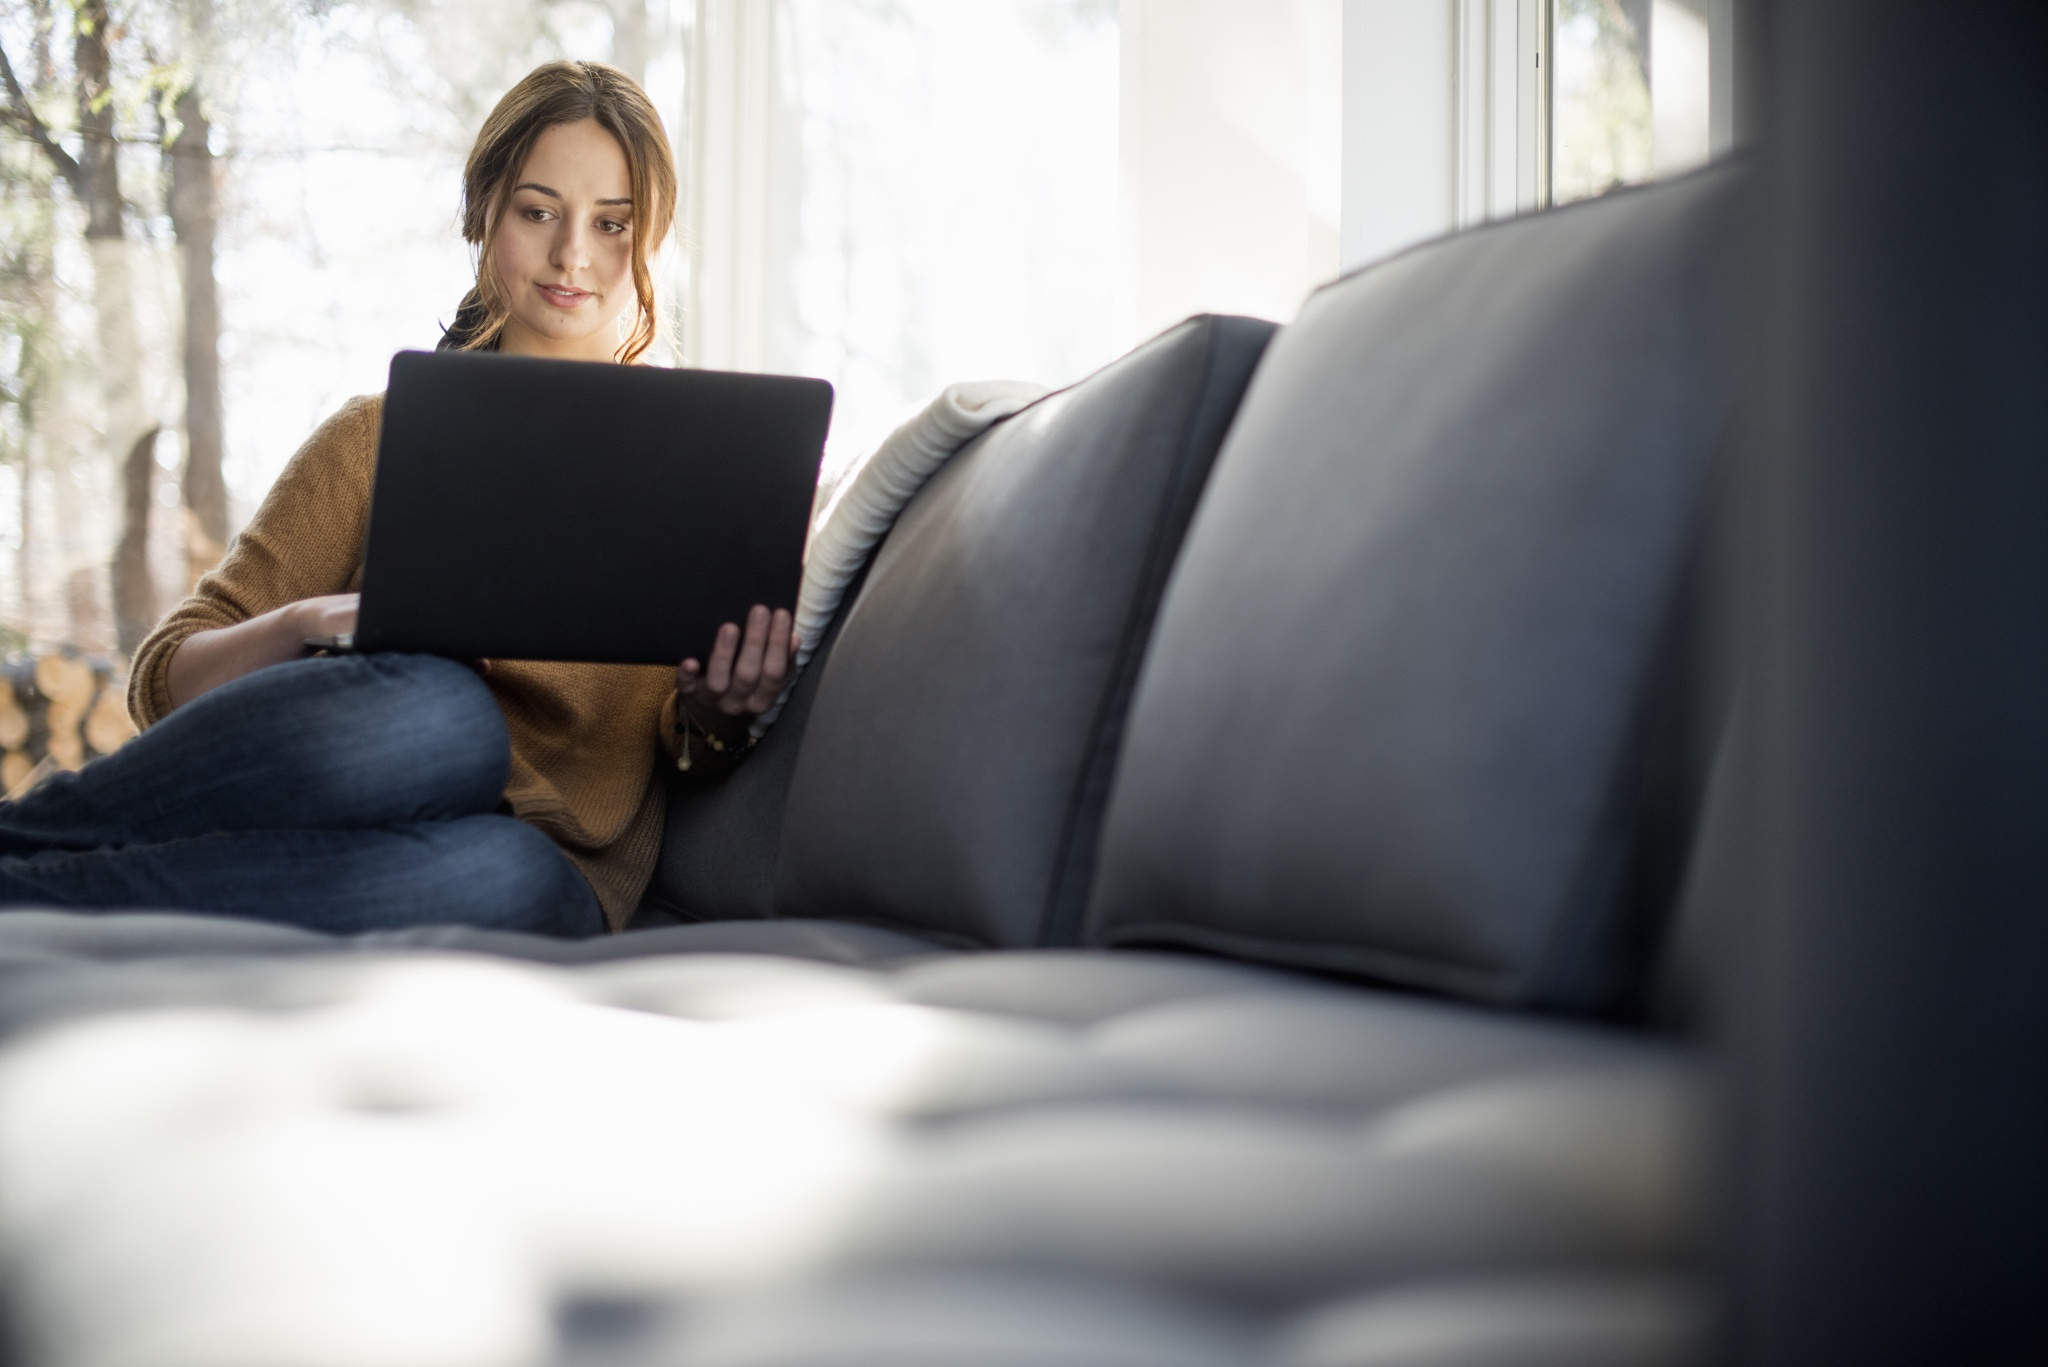 Woman sitting on a sofa looking at her laptop, smiling.